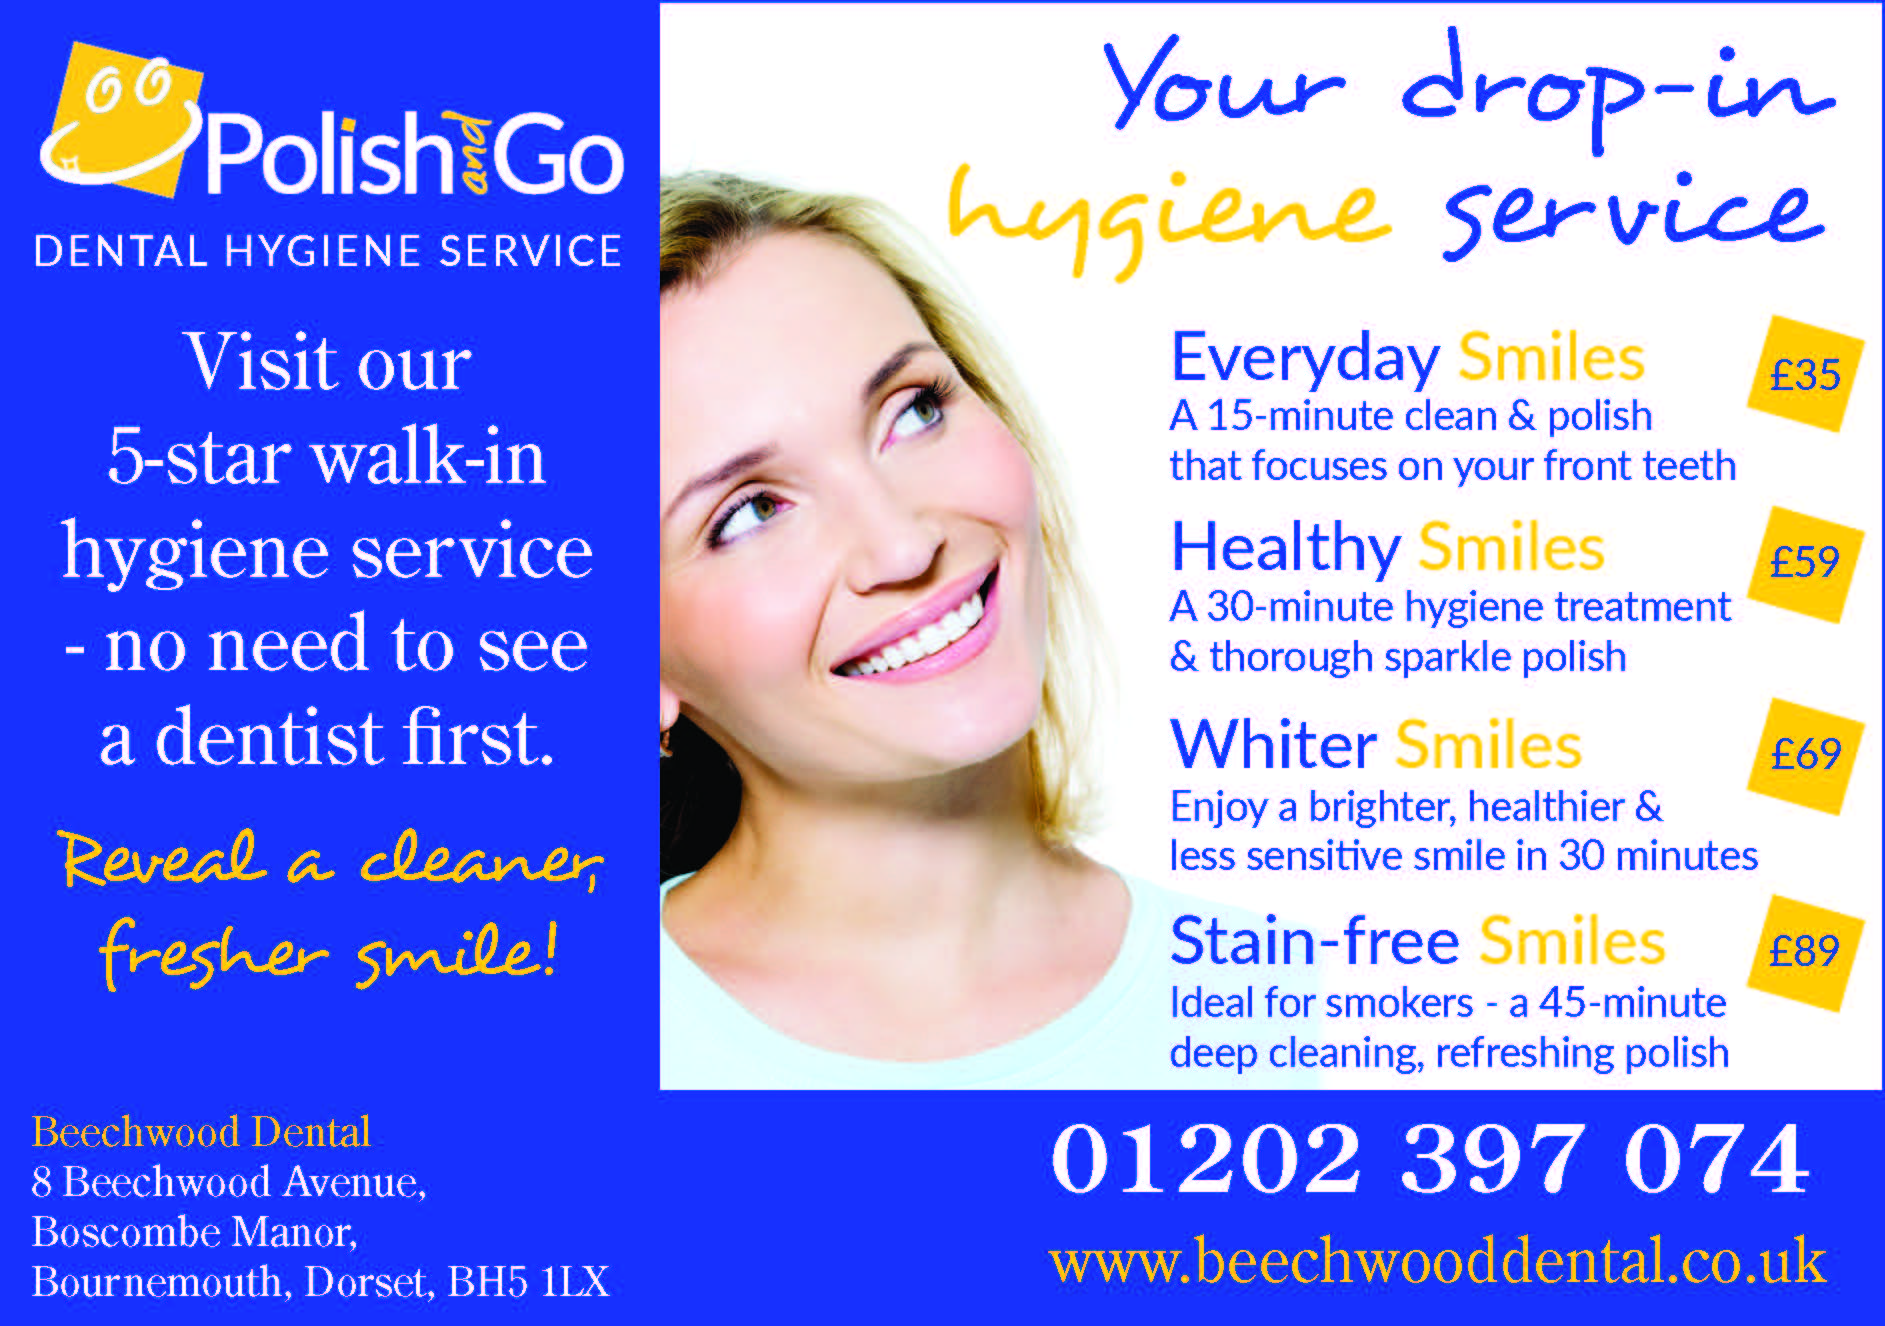 beechwood dental new bournemouth dental hygienist service beechwood dorset publications half page nps ad